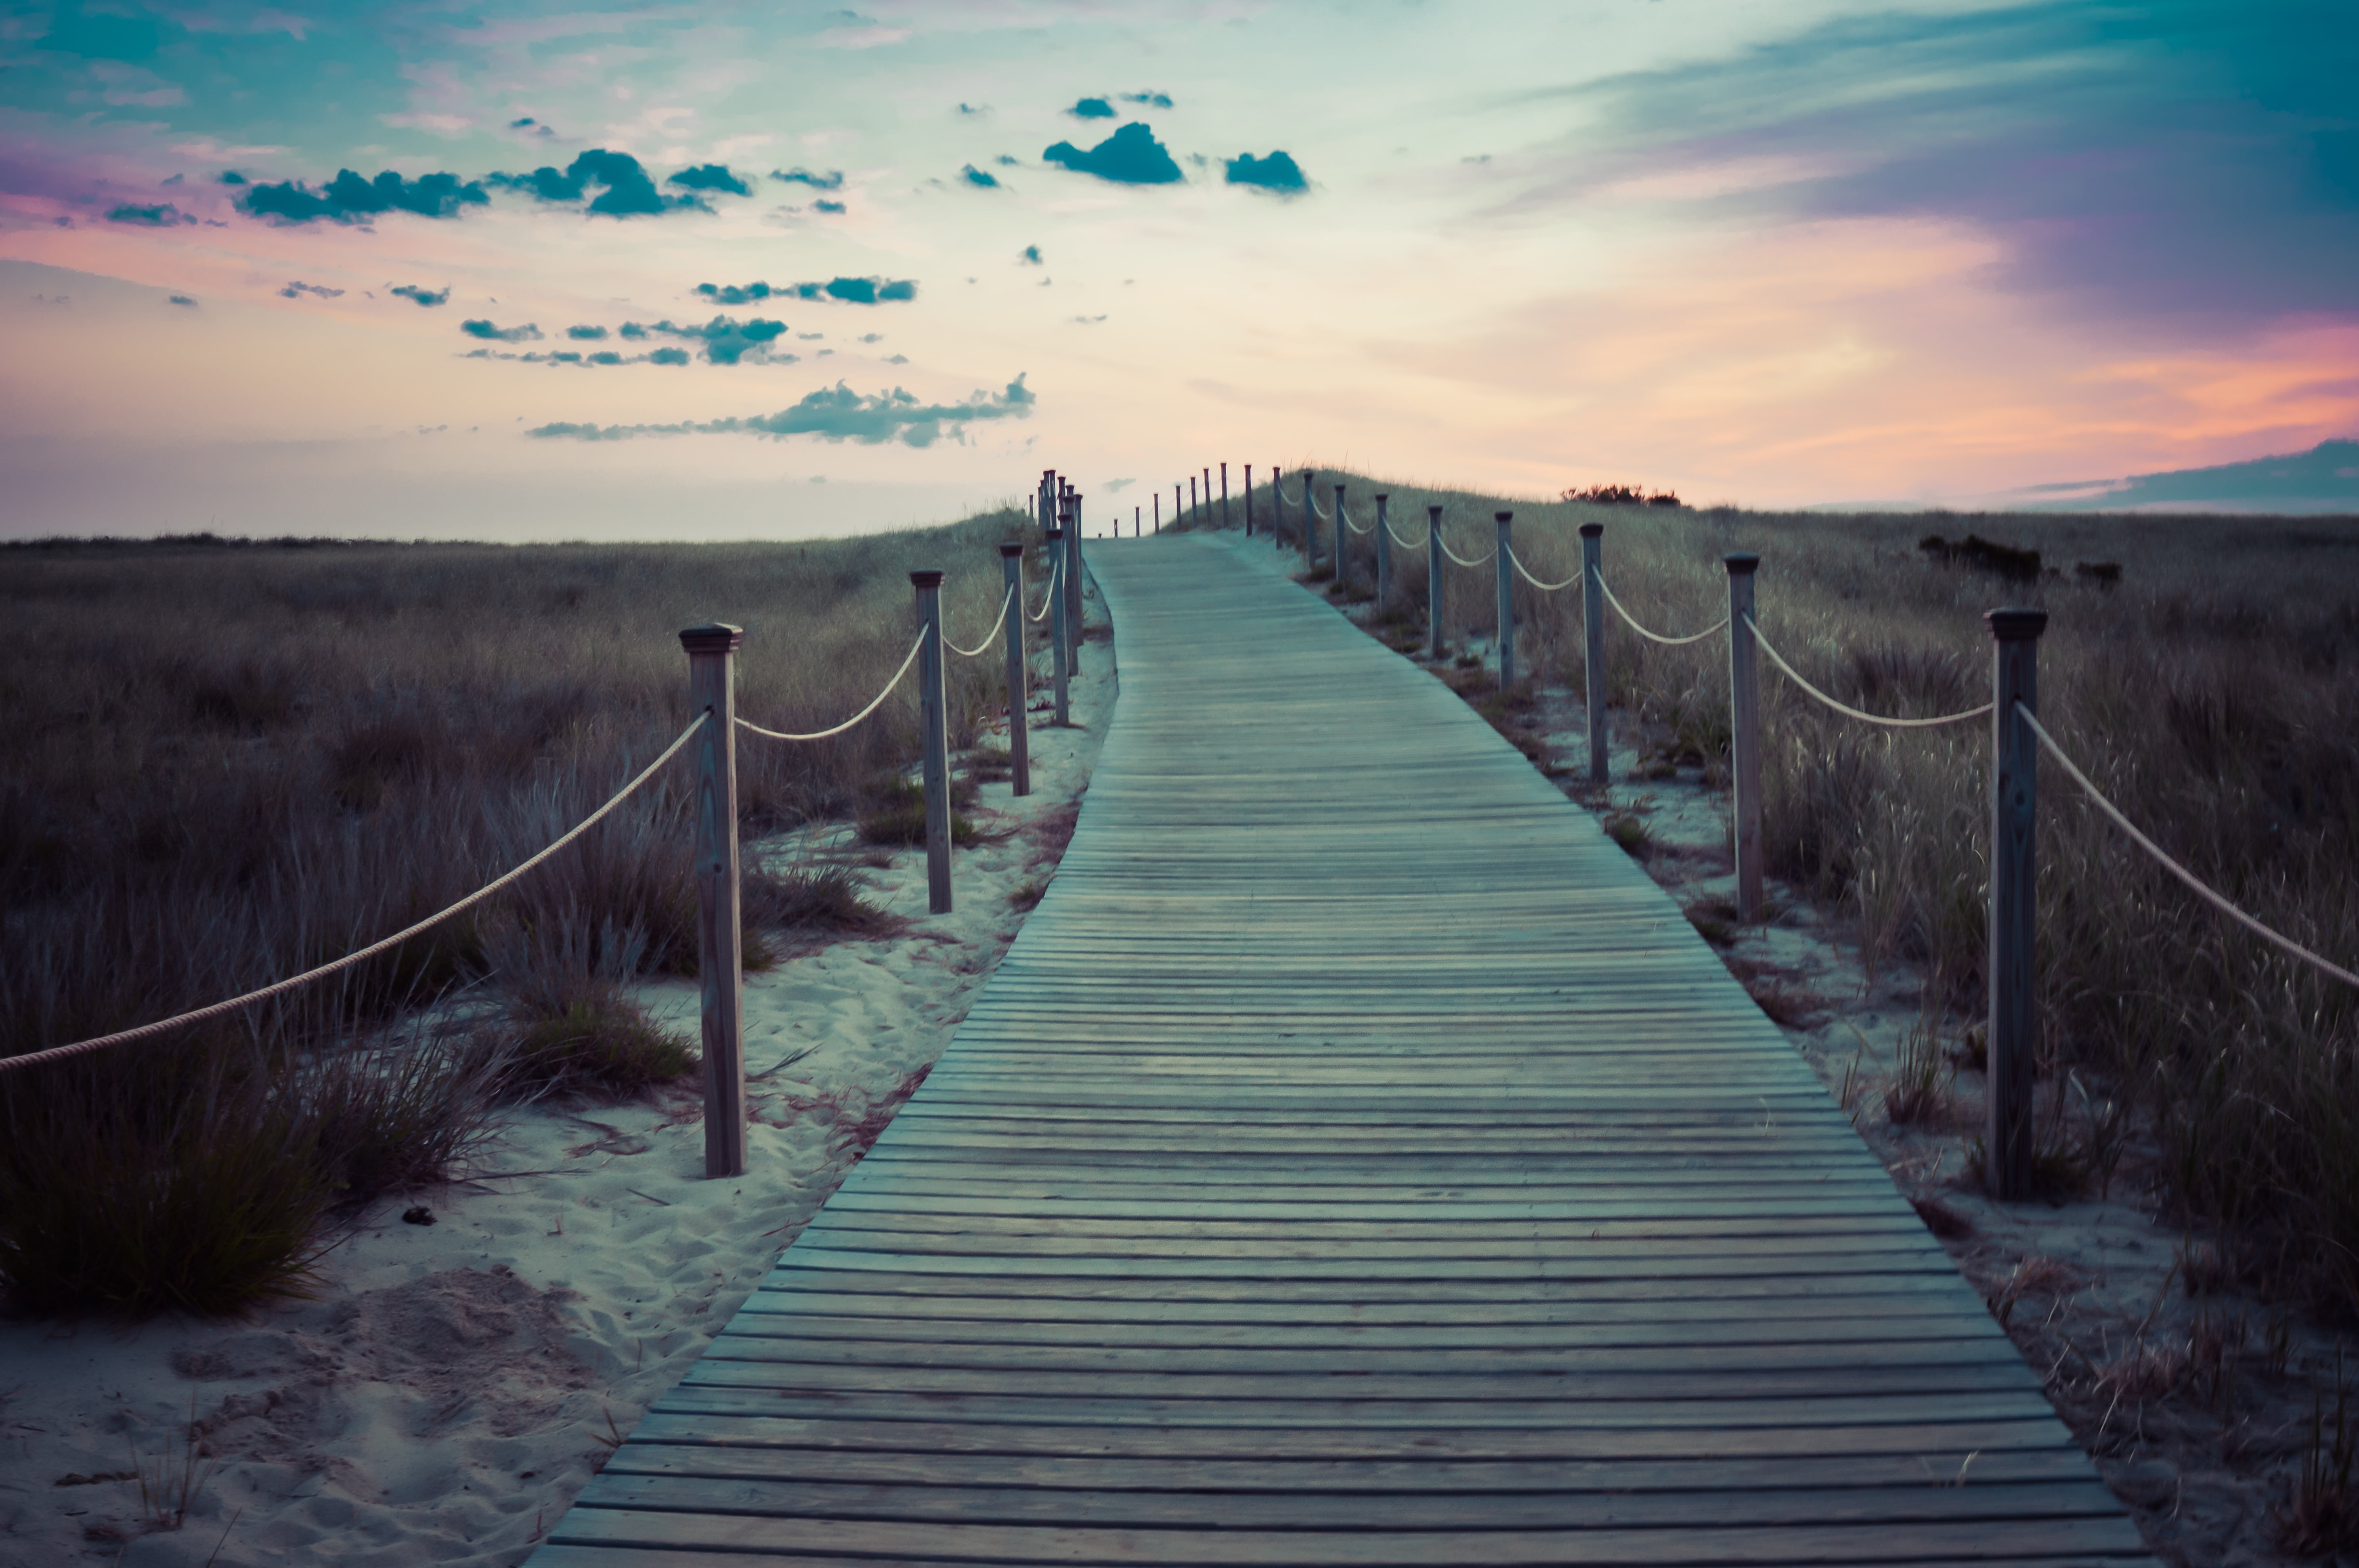 Brown wooden walkway photo